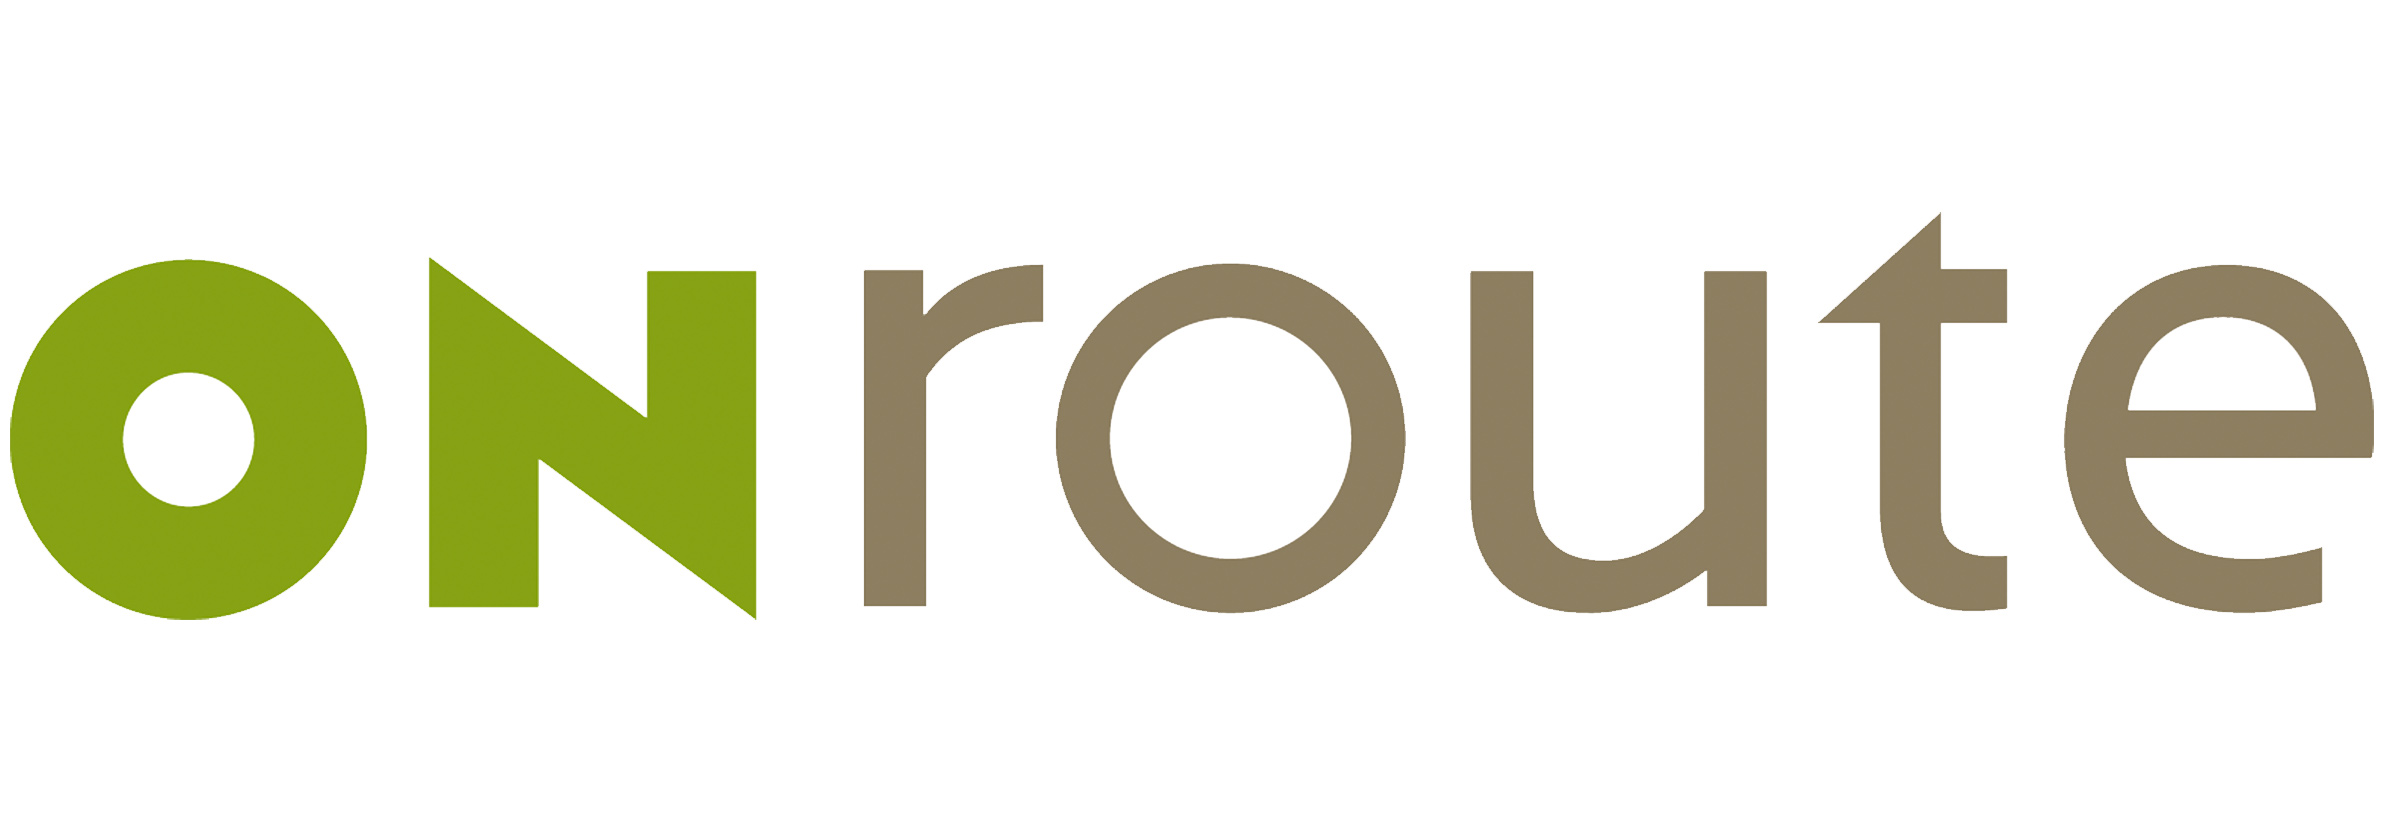 ONroute Makes Significant Donation to Support Our Troops After Month-Long Campaign